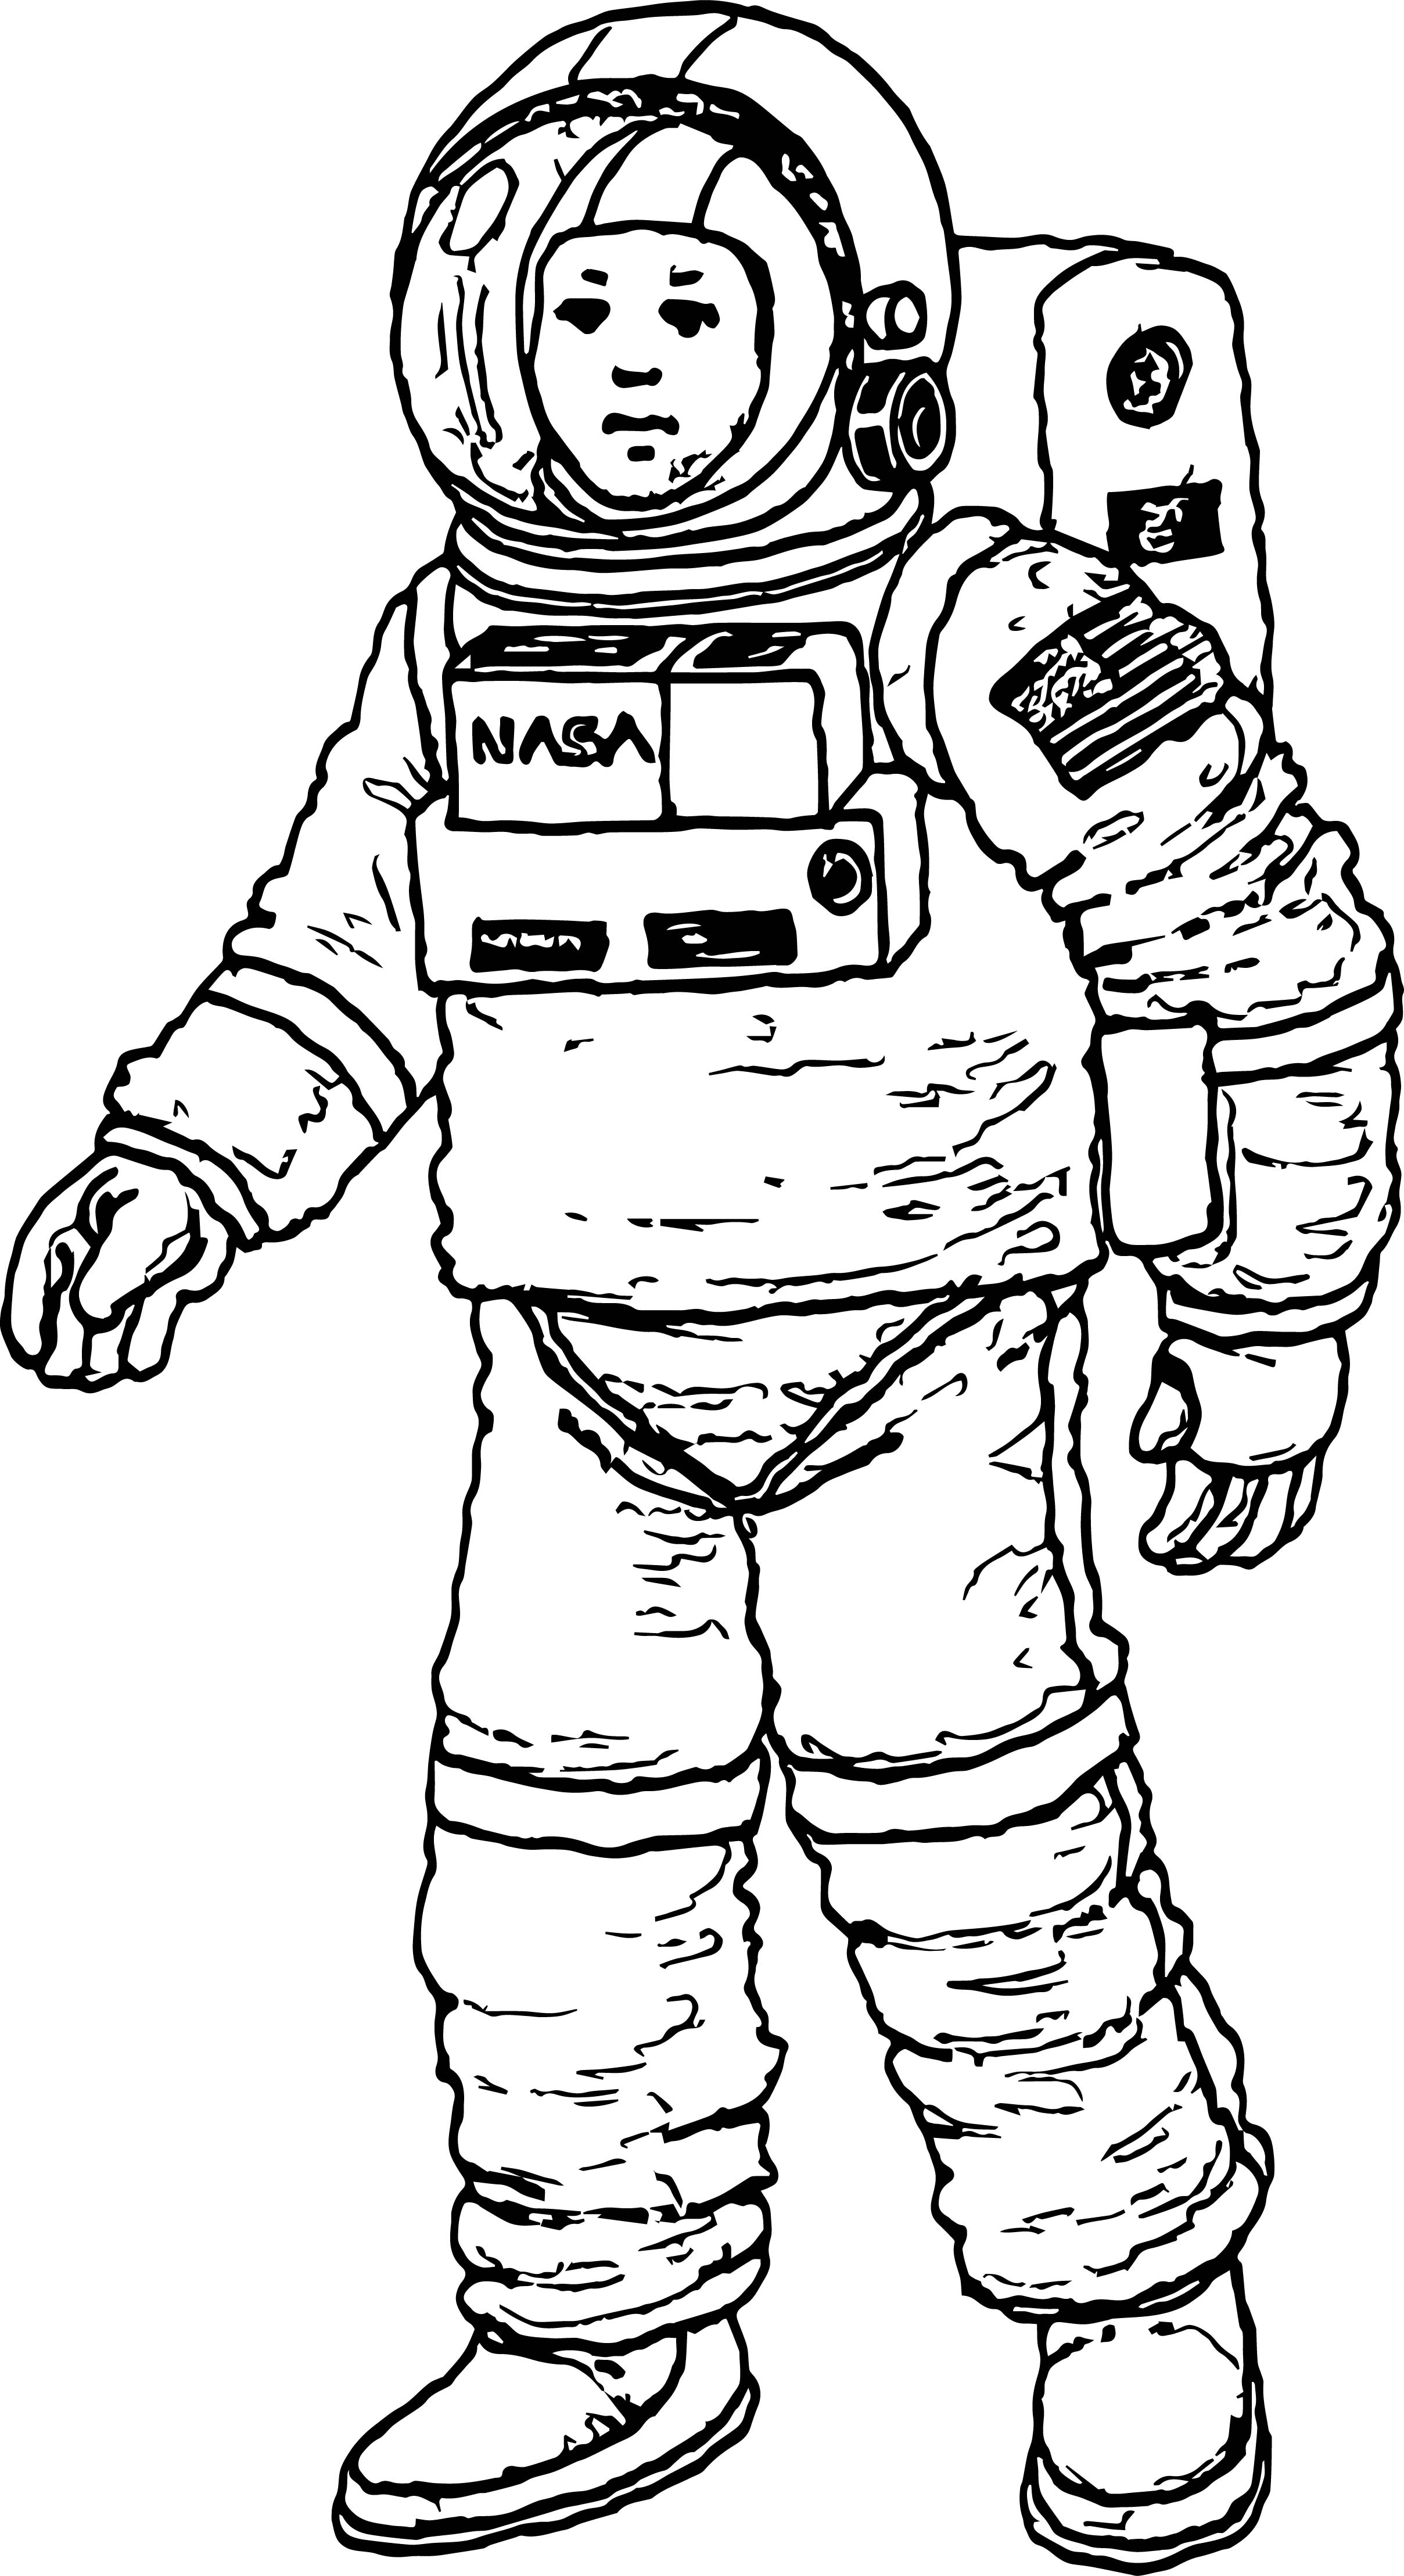 astronaut for coloring printable astronaut coloring pages for kids cool2bkids for coloring astronaut